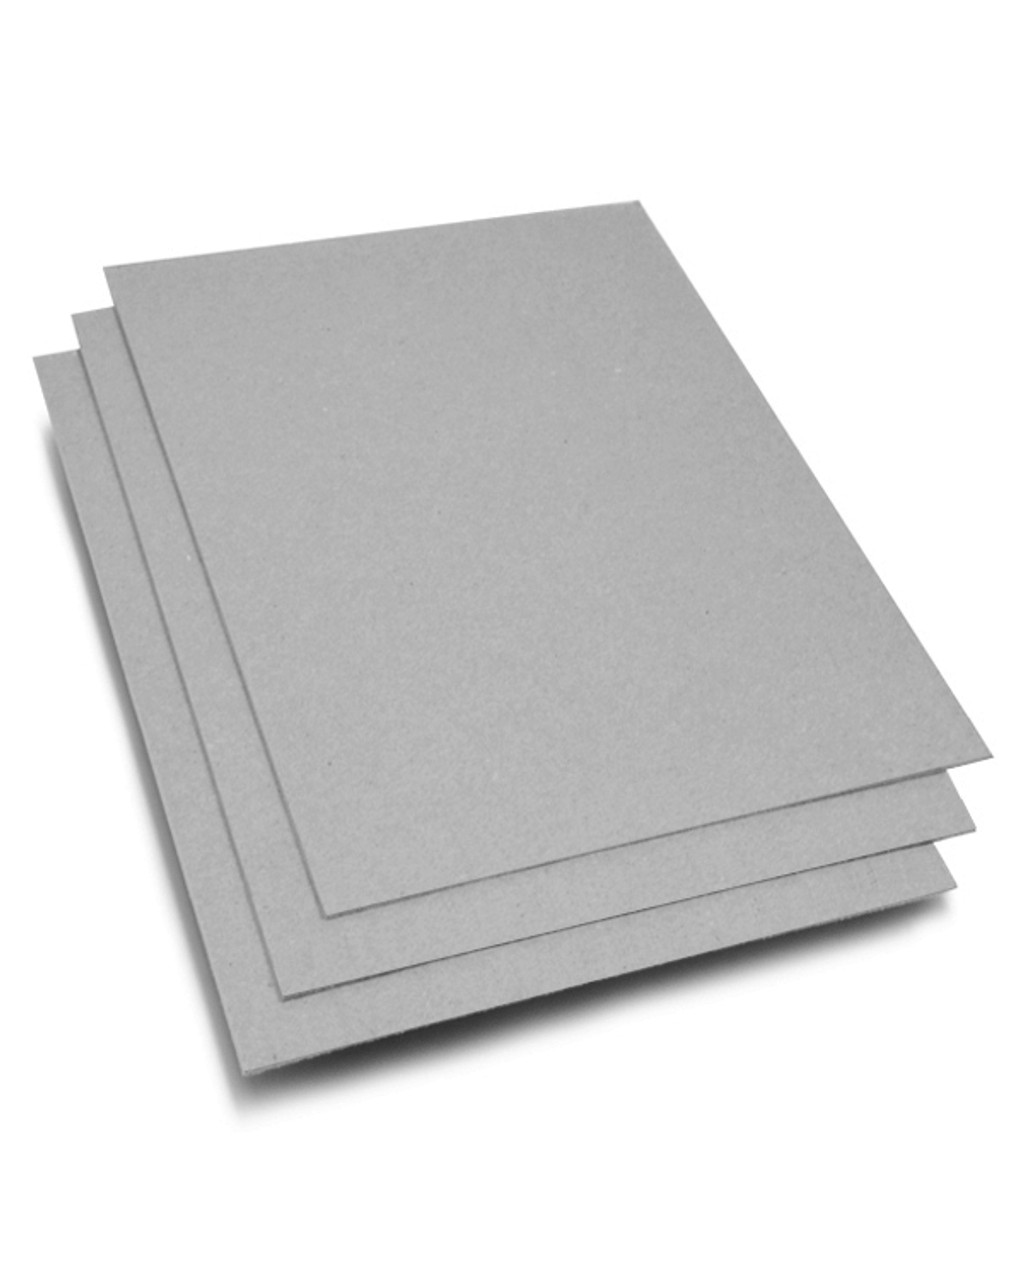 Gray Chipboard - Medium Weight .04""